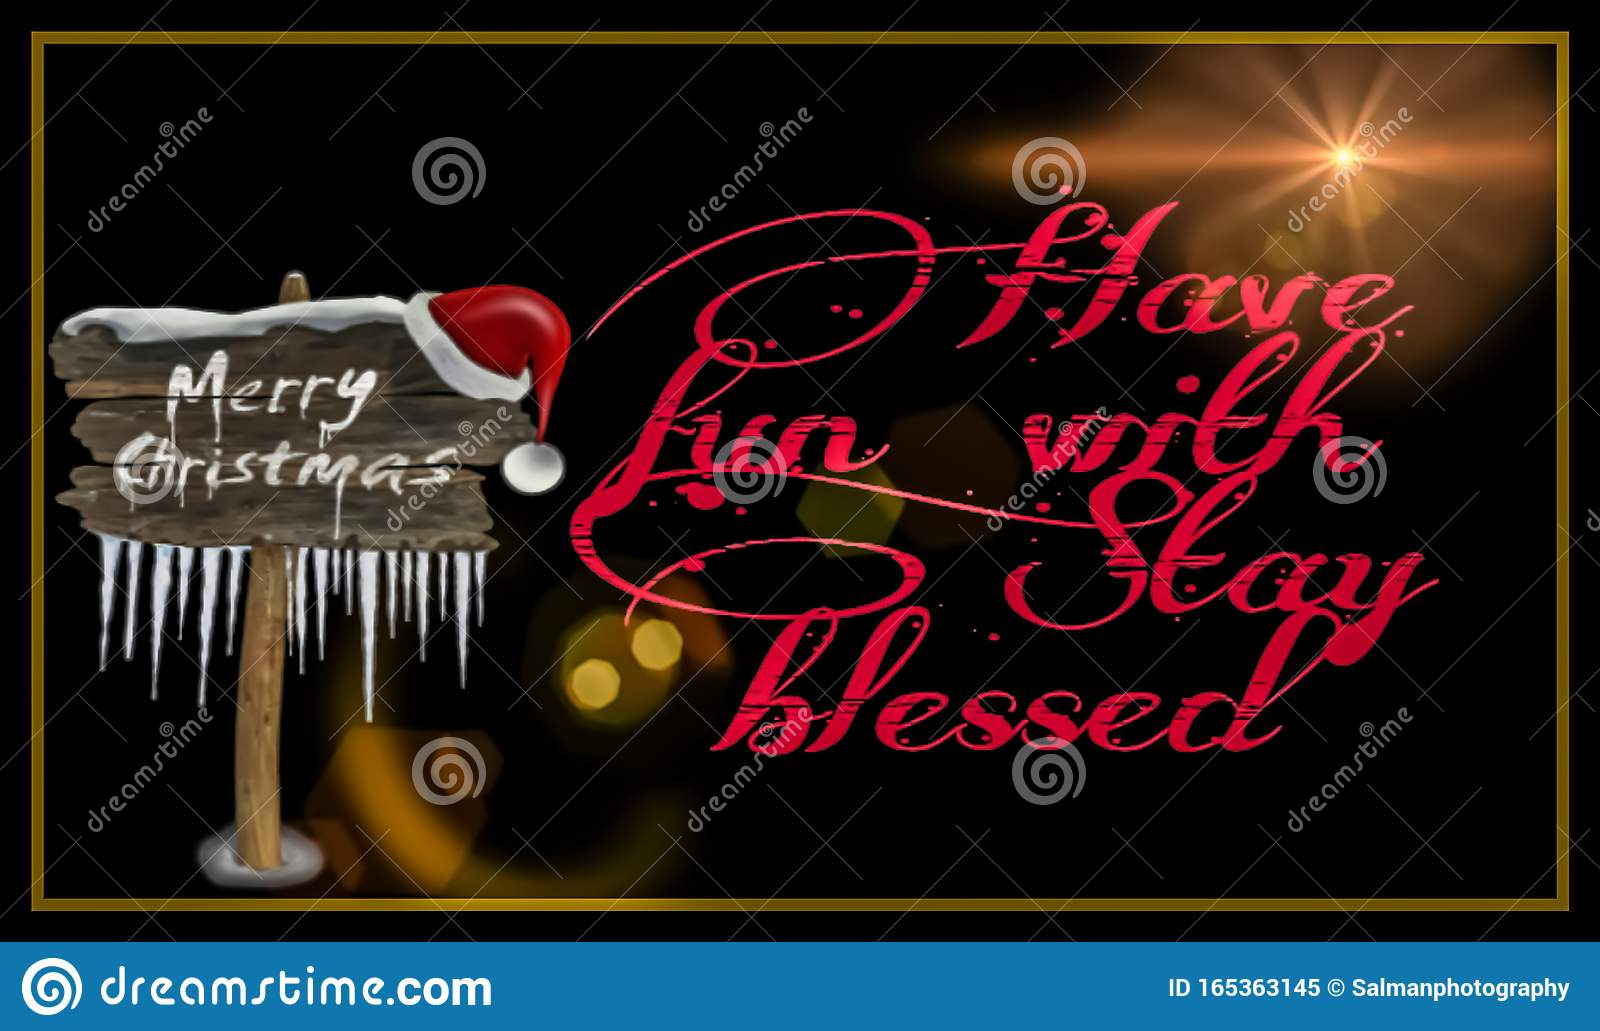 Wishing picture of Merry Christmas 2019